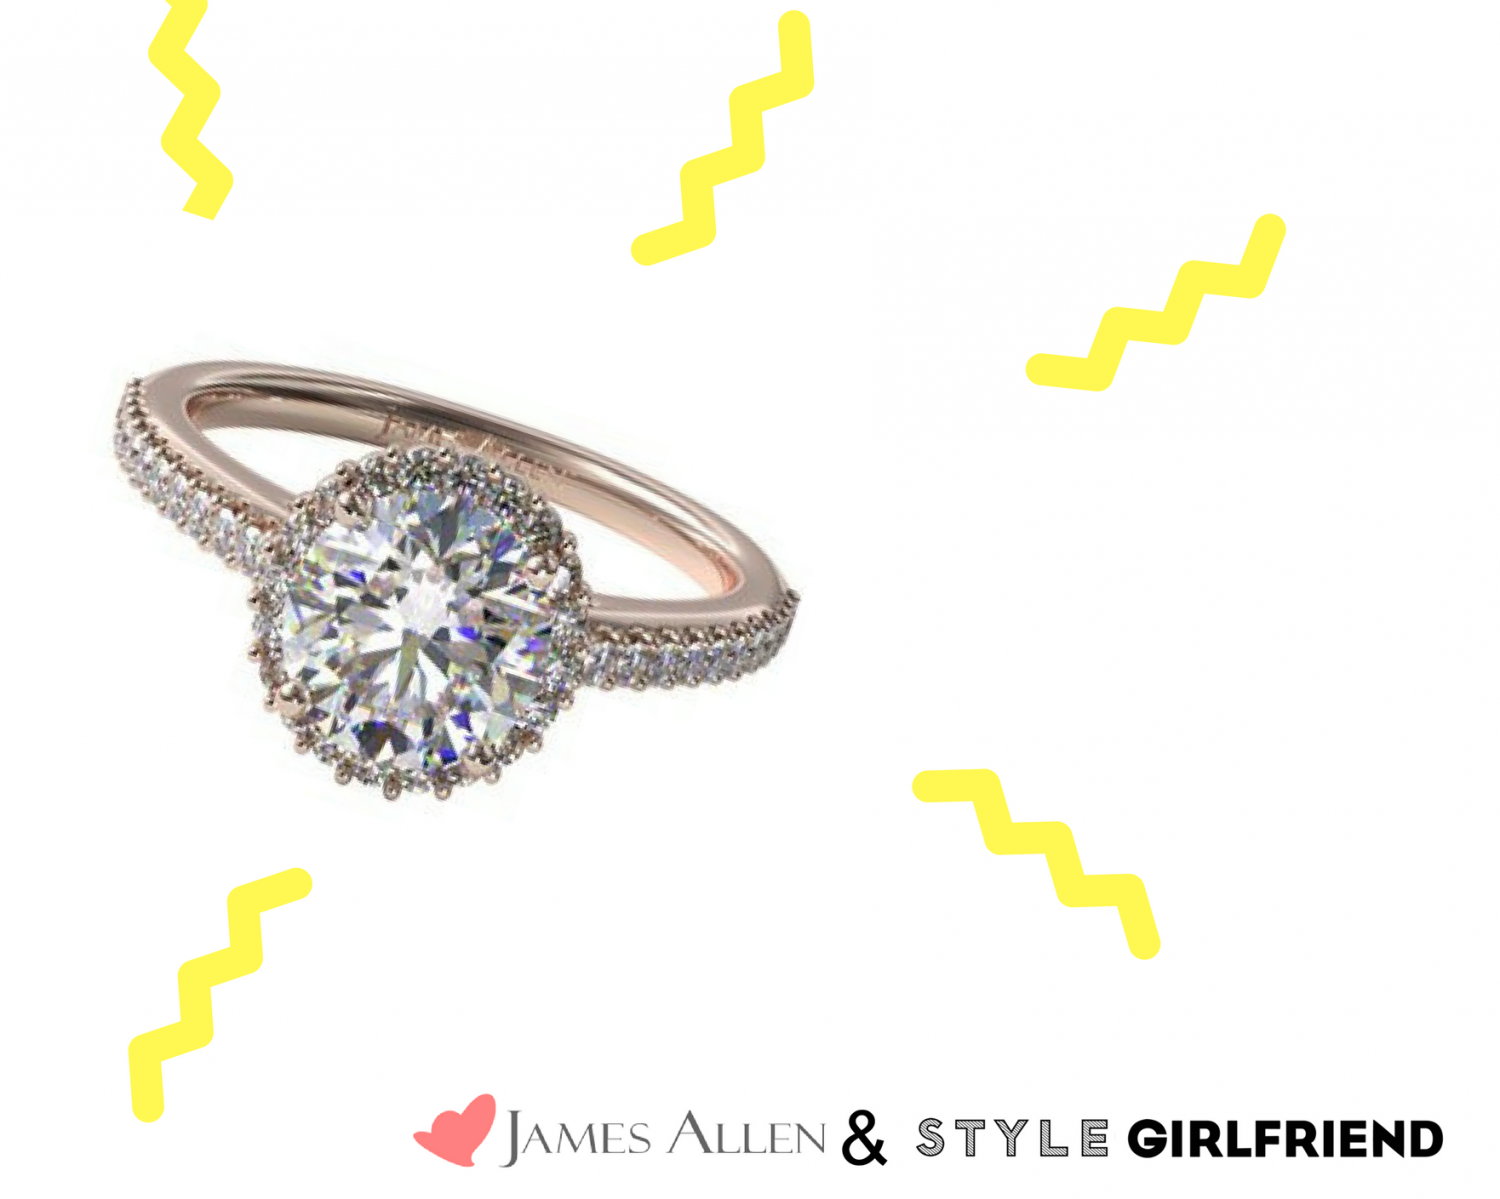 james allen, perfect engagement ring, engagement ring shopping